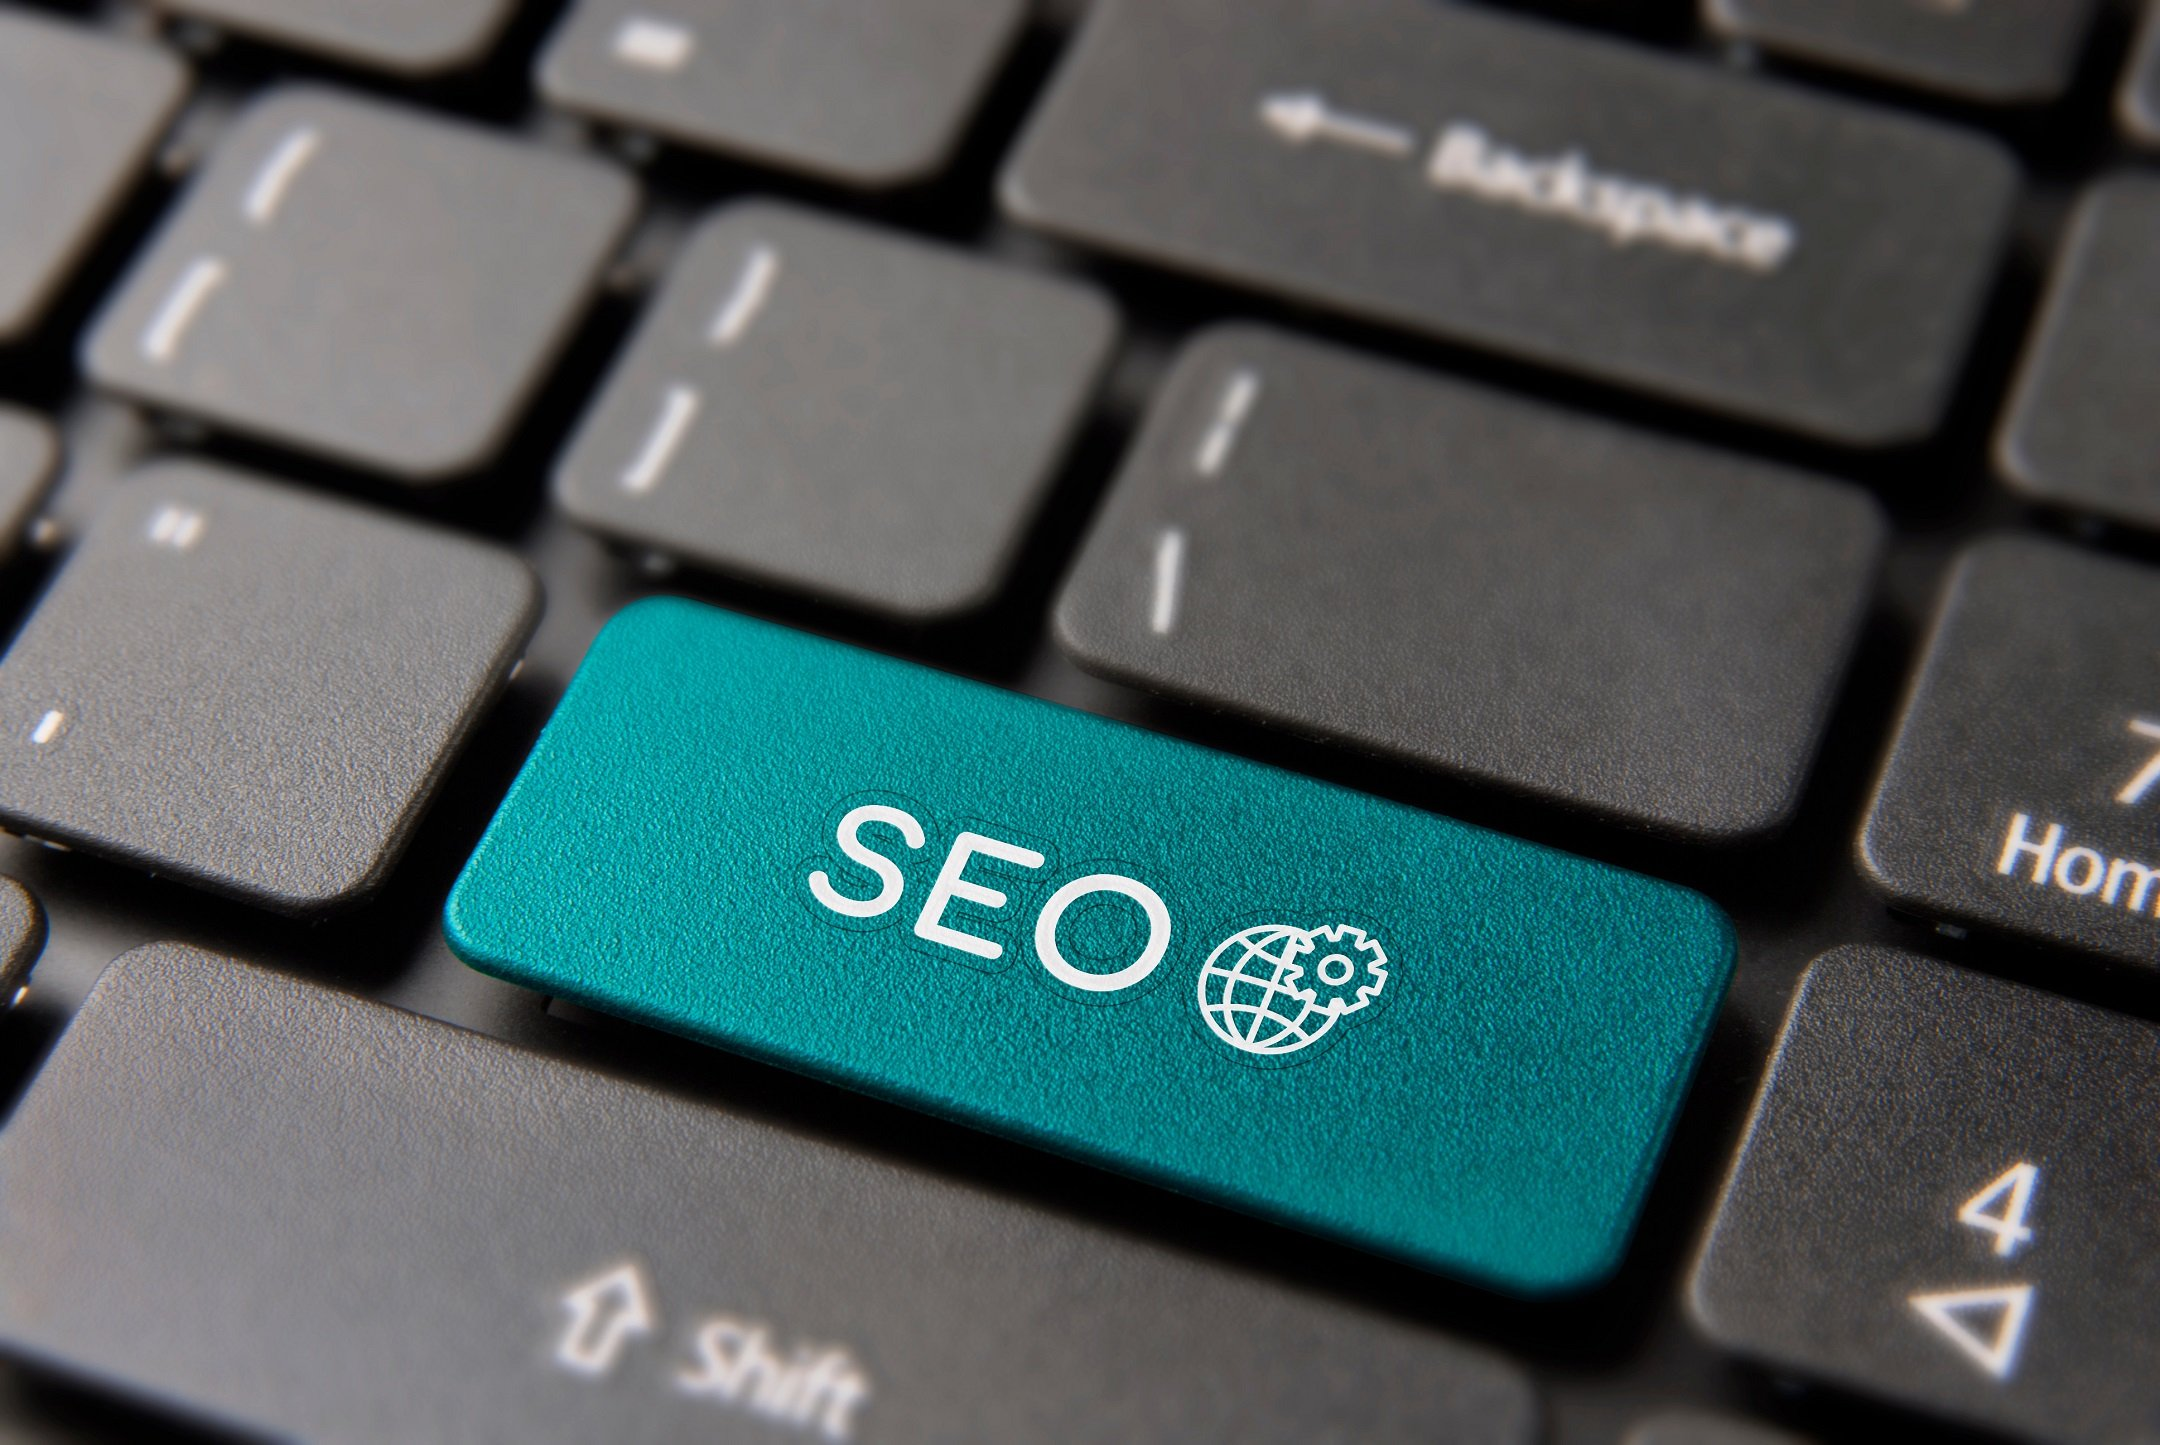 The Concept of SEO on Houzz Shown on a Keyboard